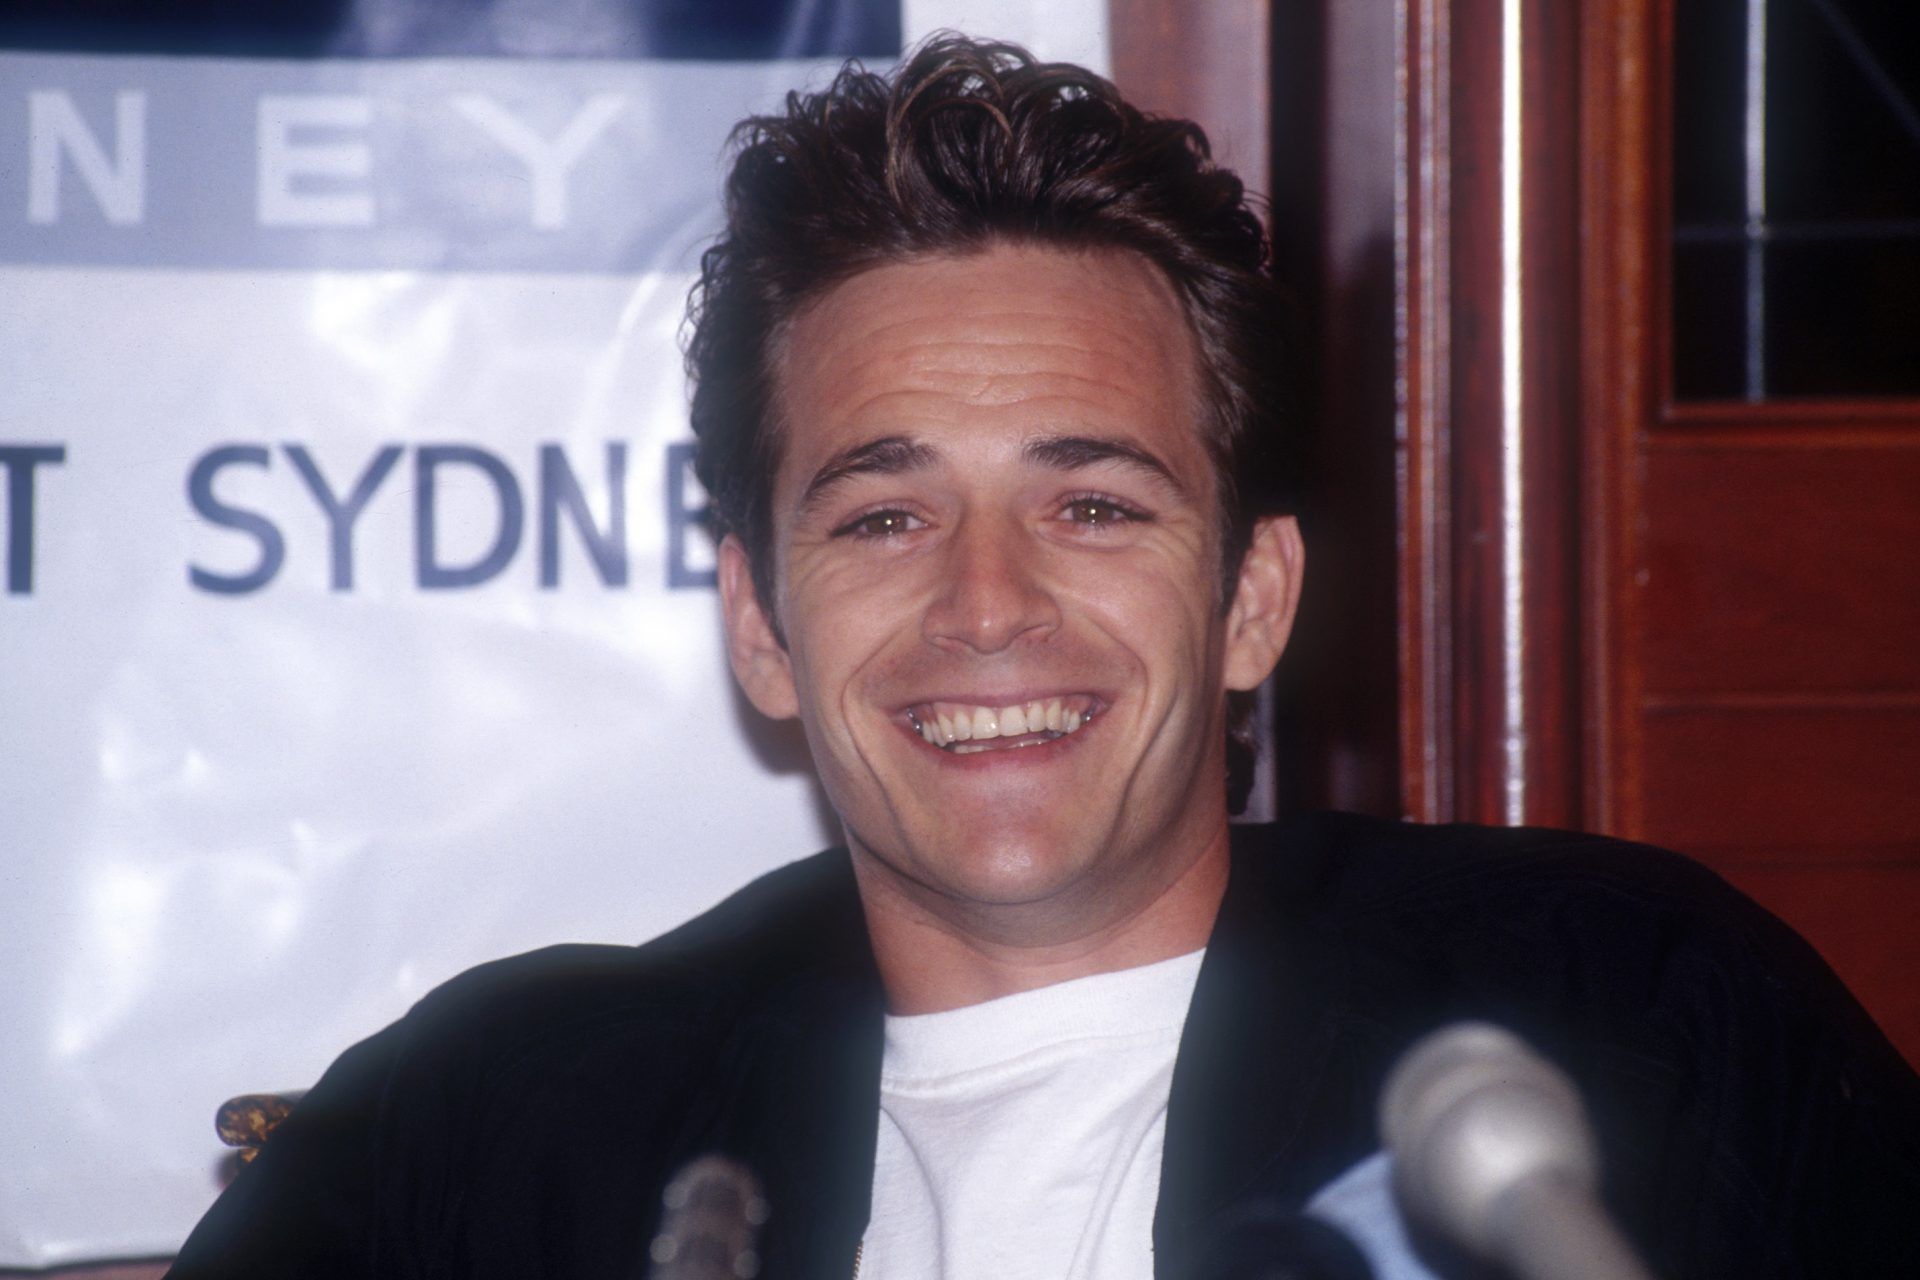 Luke Perry: a 90s icon taken too soon